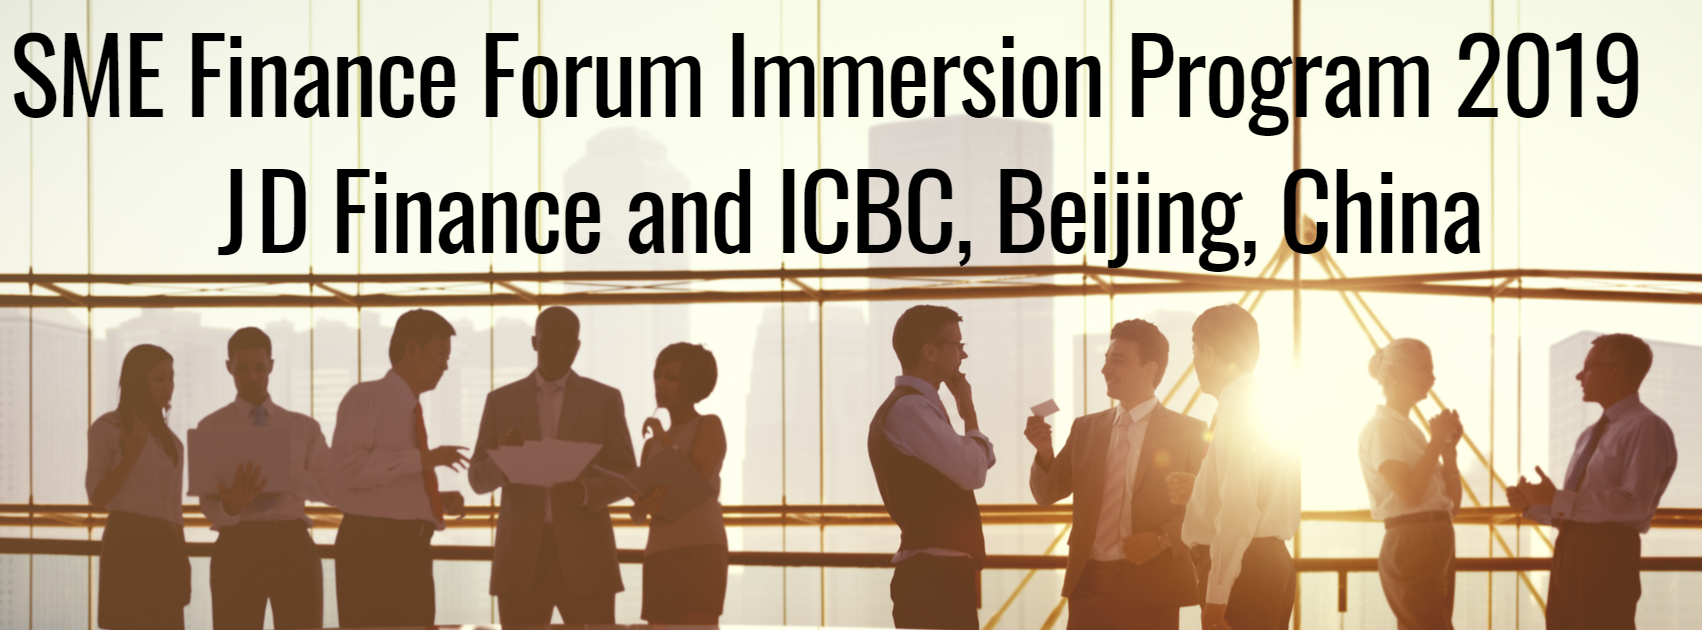 SME Finance Forum Immersion Program 2019 - JD Finance and ICBC, Beijing, China